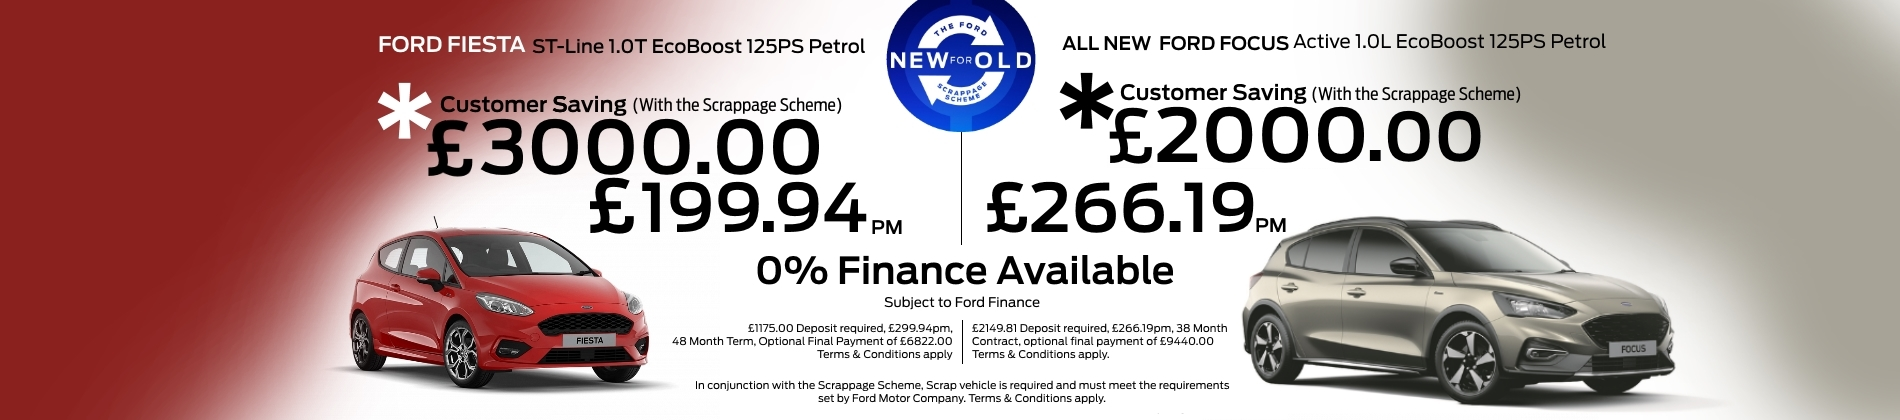 Ford Fiesta and Focus Offer